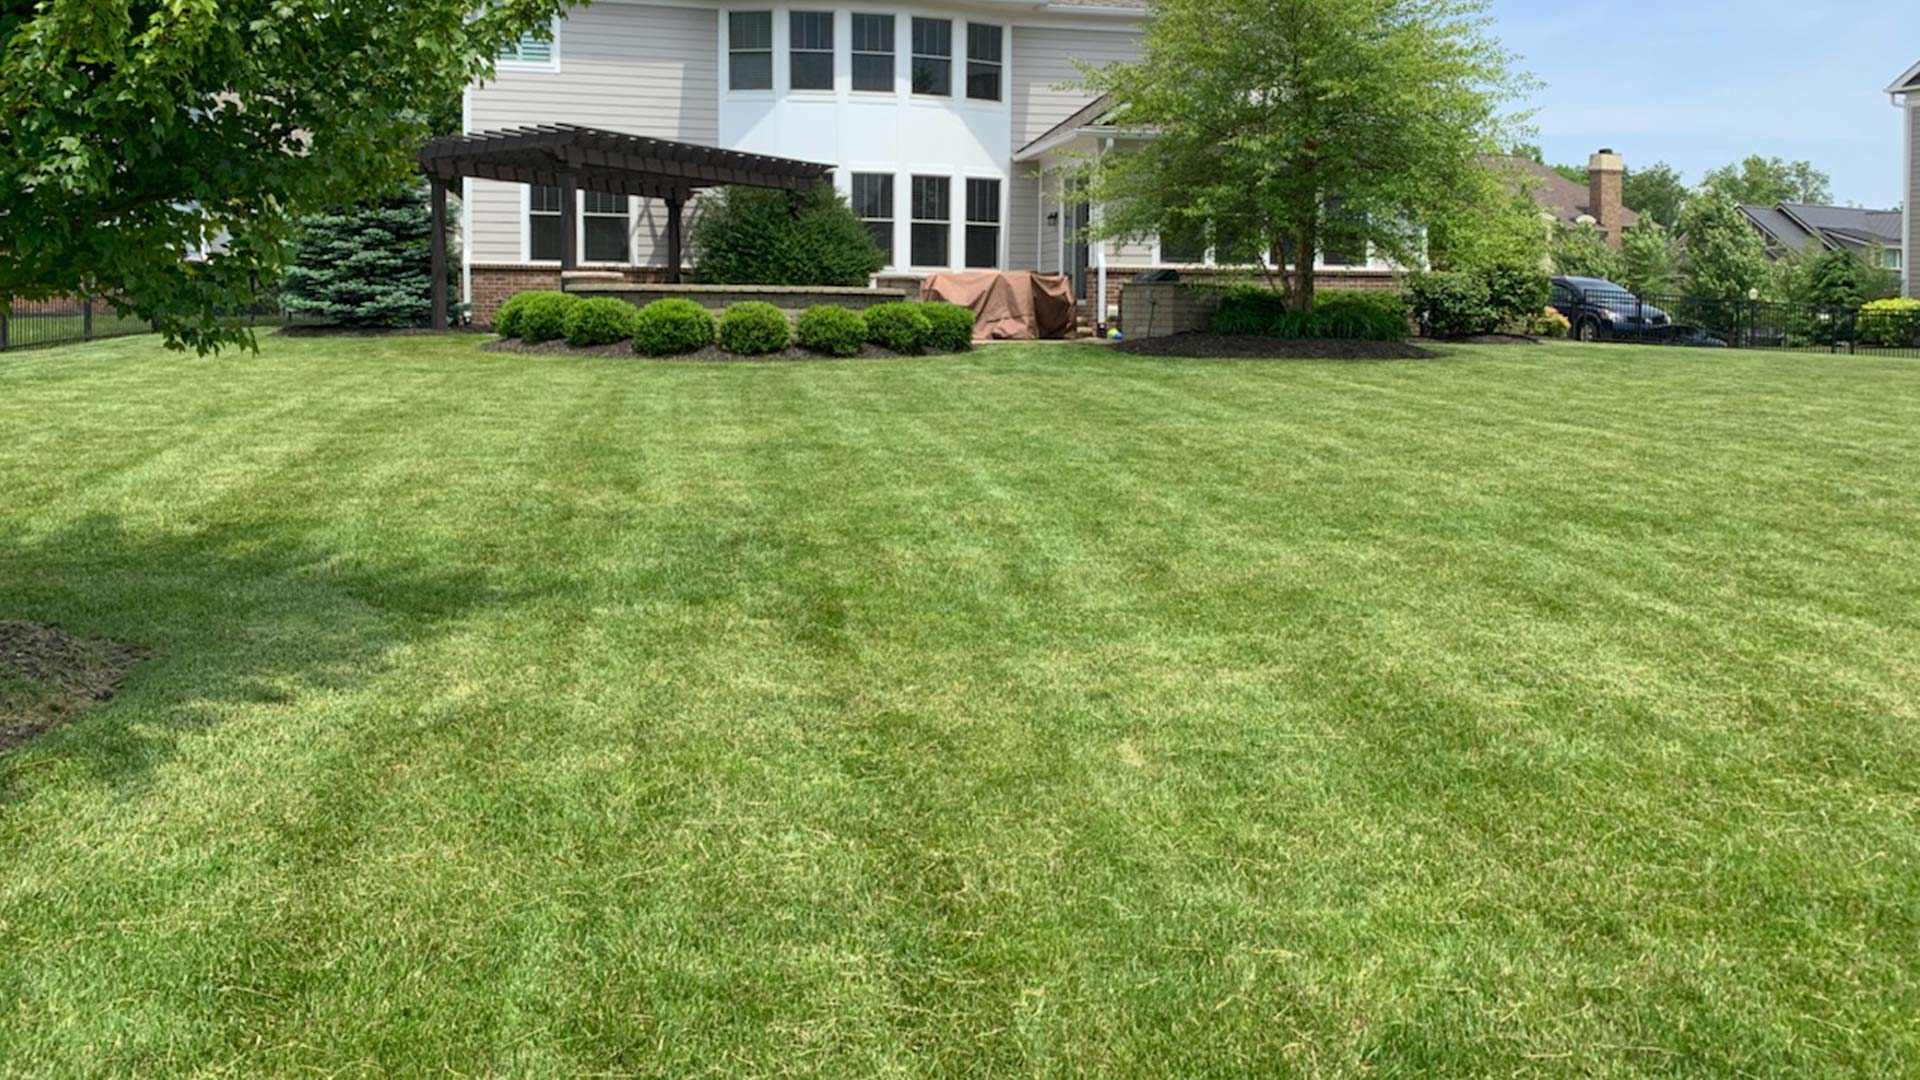 Noblesville customer with a lawn freshly mowed by Spider Lawn & Landscape.